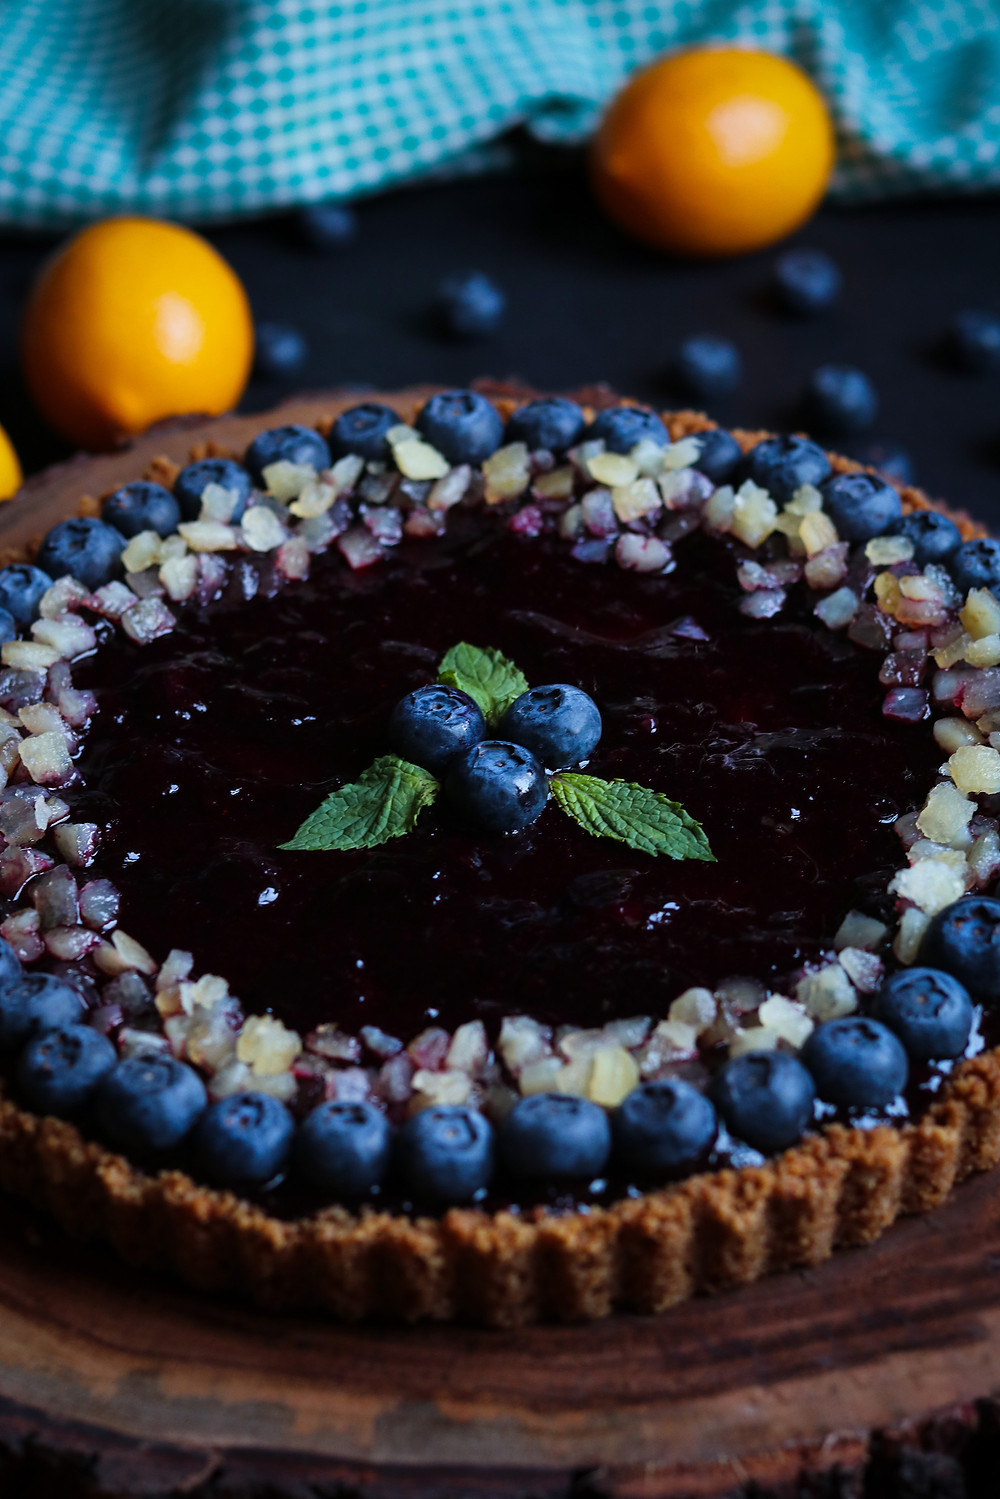 Lemon Blueberry Ricotta Cheesecake Tart with Blueberry Compote, Candied Lemon Peel, and Lemon Snap Crust